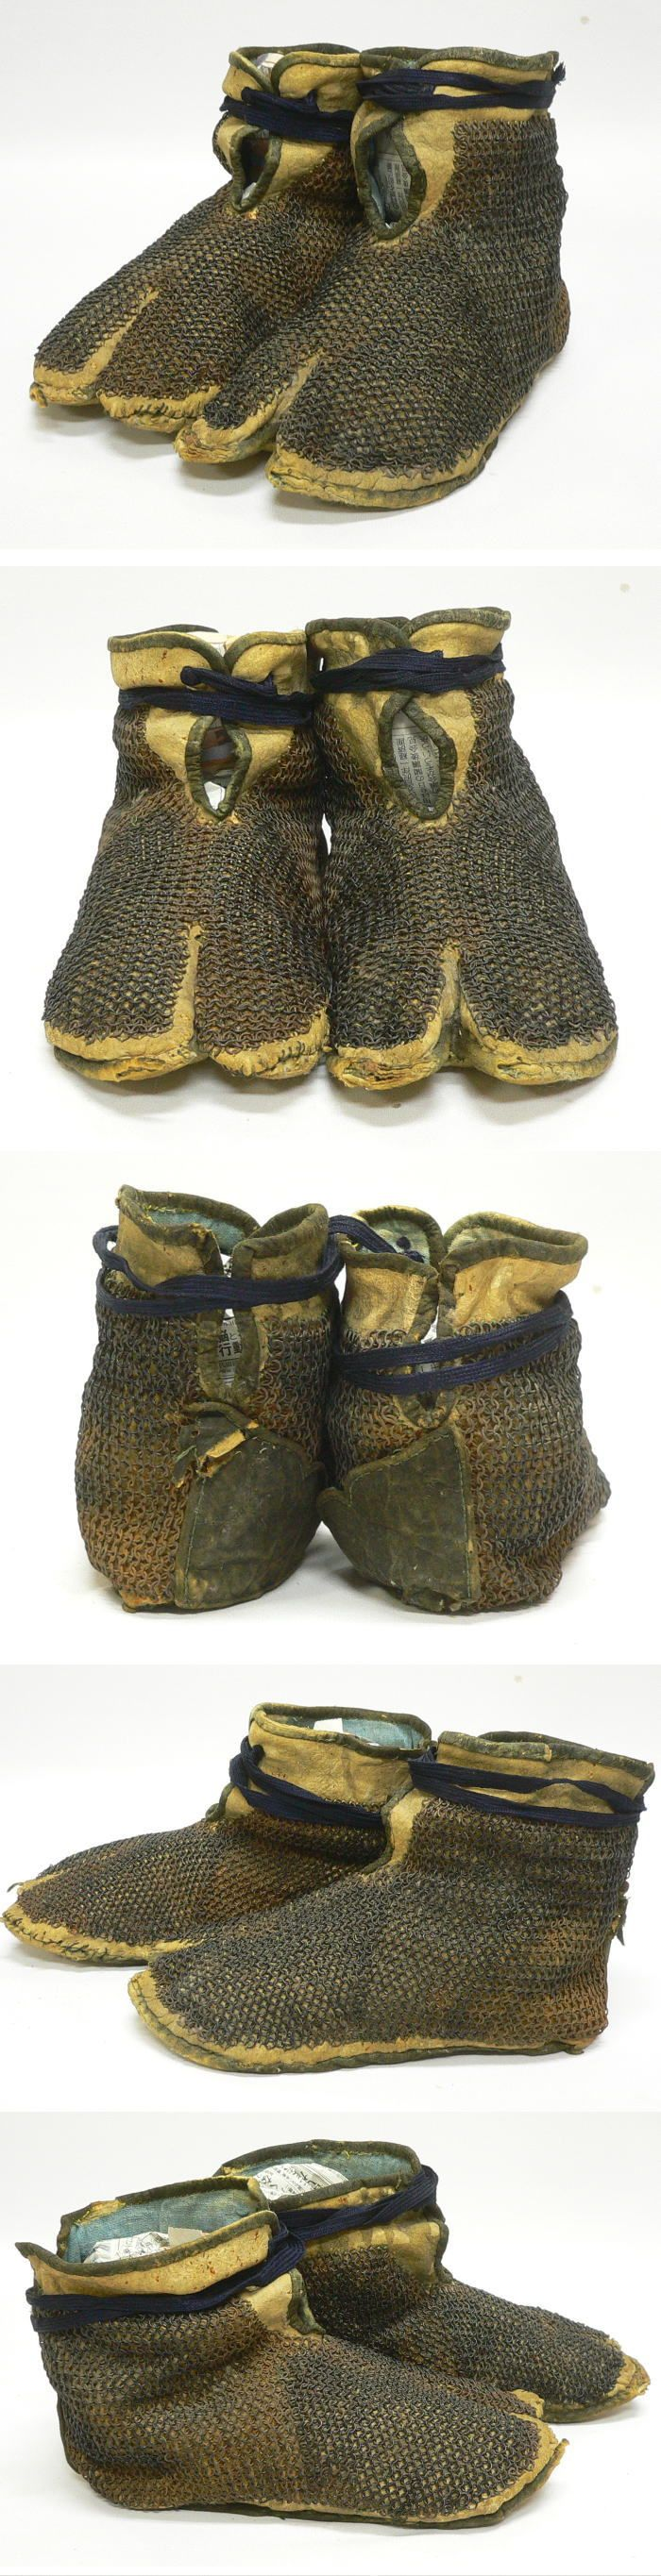 Japanese kusari kogake, leather shoes with mail armor, Edo period.